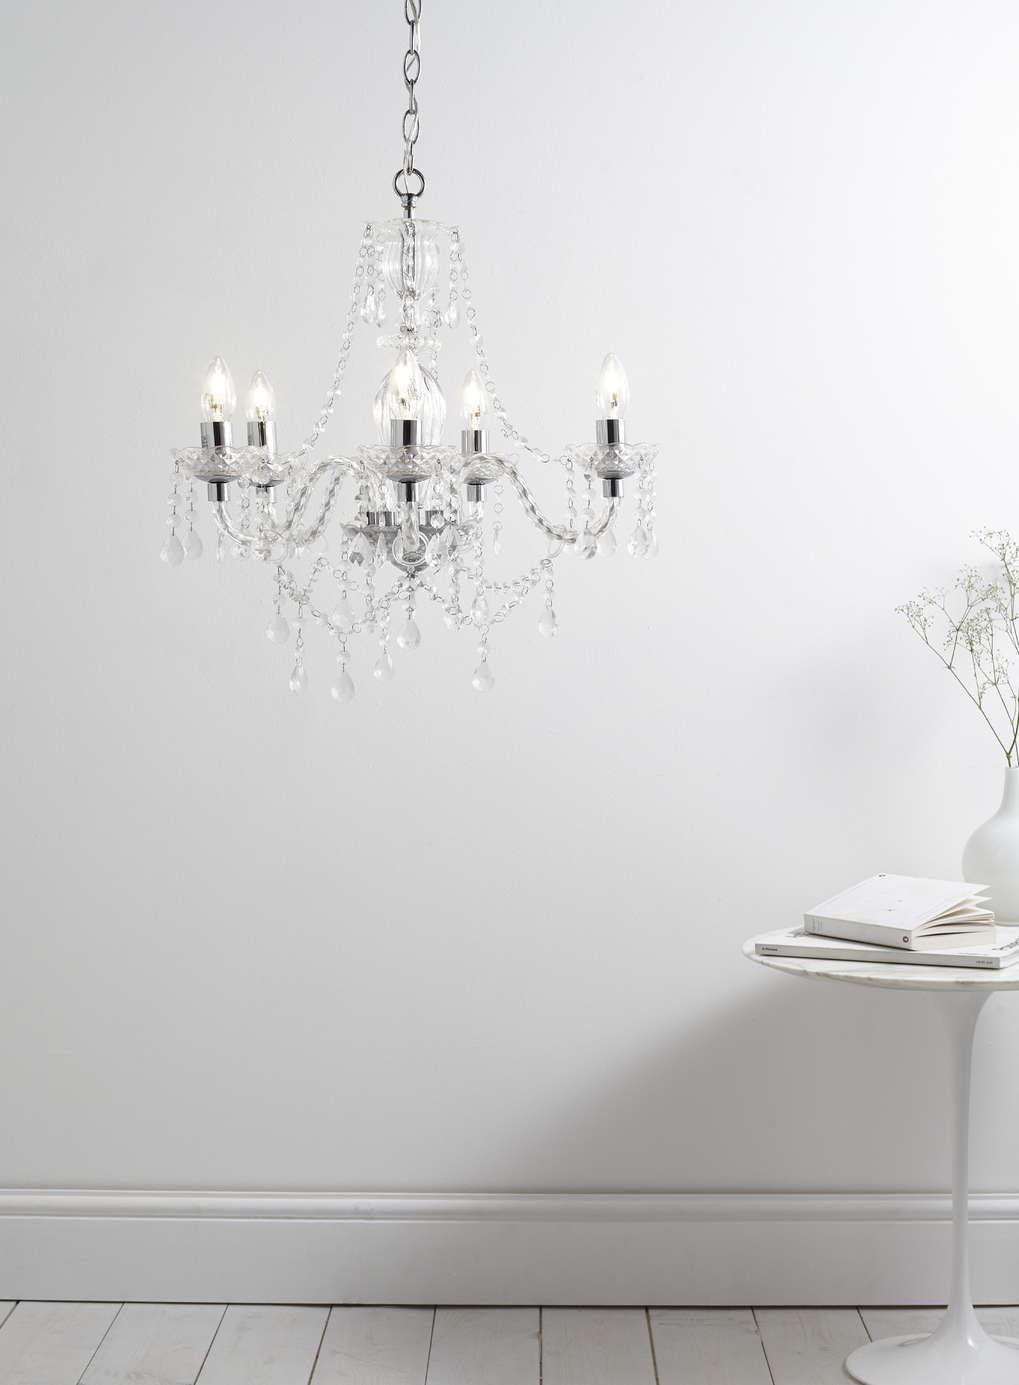 Bathroom Chandeliers Bhs bryony 5 light chandelier, chrome - all home & lighting sale